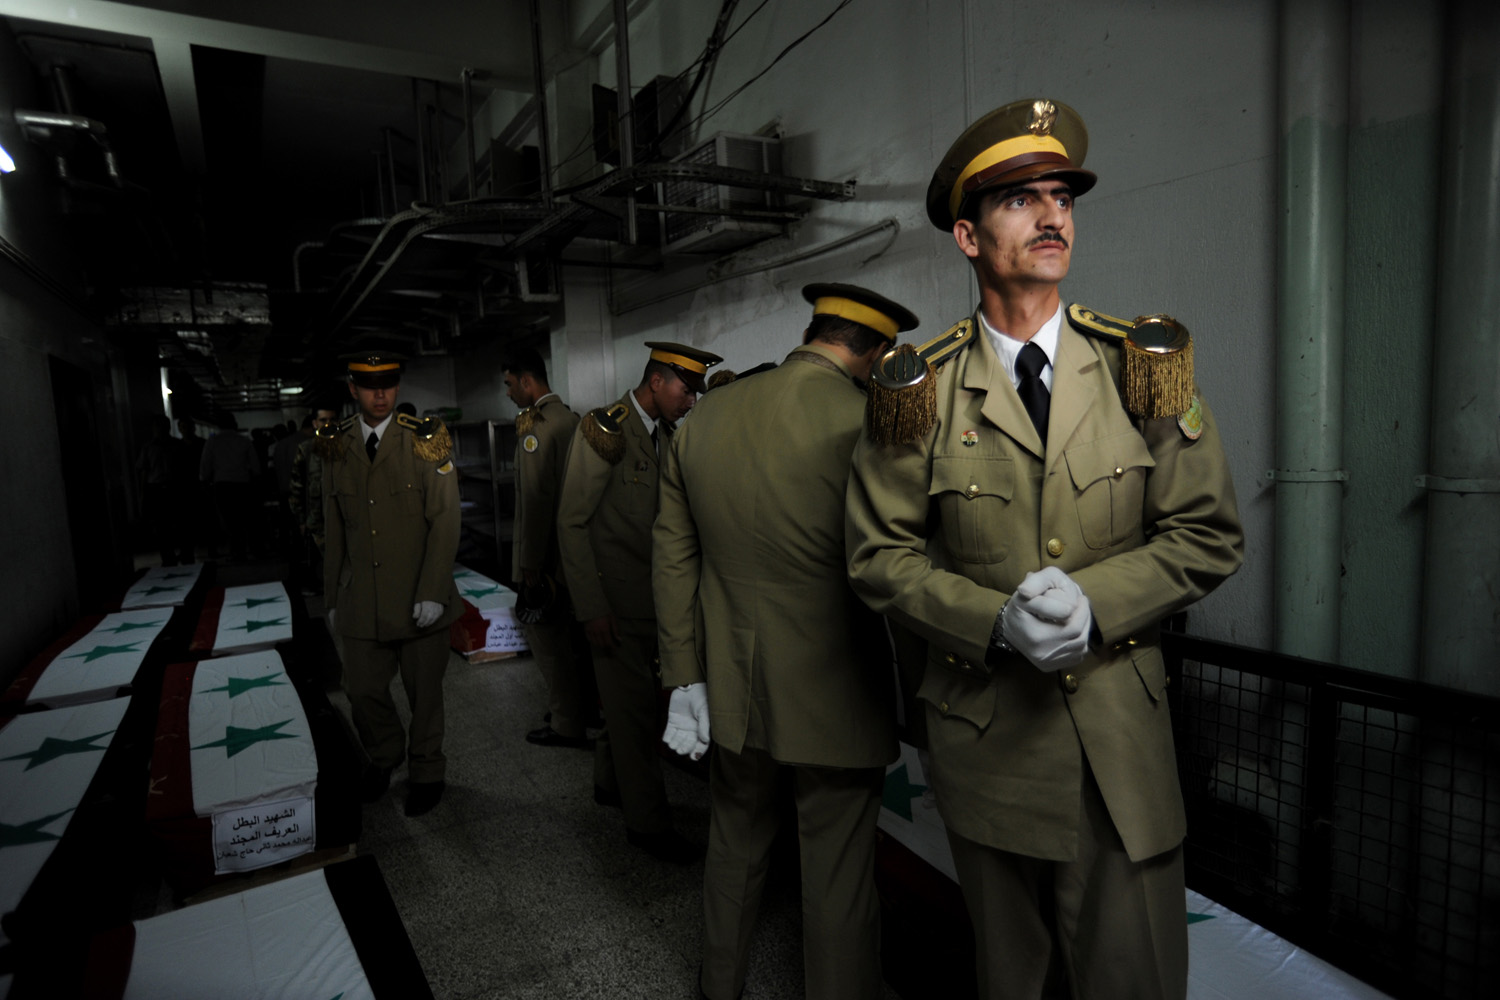 Kate Brooks                                A couple of days after I arrived in Damascus, I photographed a series of military funerals — 42 in total. Eight more men remained in cool storage at Tishreen Military Hospital for the next ceremonial conveyer belt. I can't claim to know what the man in white gloves was thinking when I took this frame, but he appears worried and concerned, as are all Syrians, about the number of coffins stacking up and what the future holds.                                                              When I was in Syria in June, I was told 100 soldiers and officers were dying each week in the conflict. To put that into perspective, at that rate, over the past year more soldiers may have died in combat in Syria than American soldiers in Iraq over a nine-year period. In considering the tally of this ongoing conflict, it's important to remember that military service is mandatory for all Syrian men.